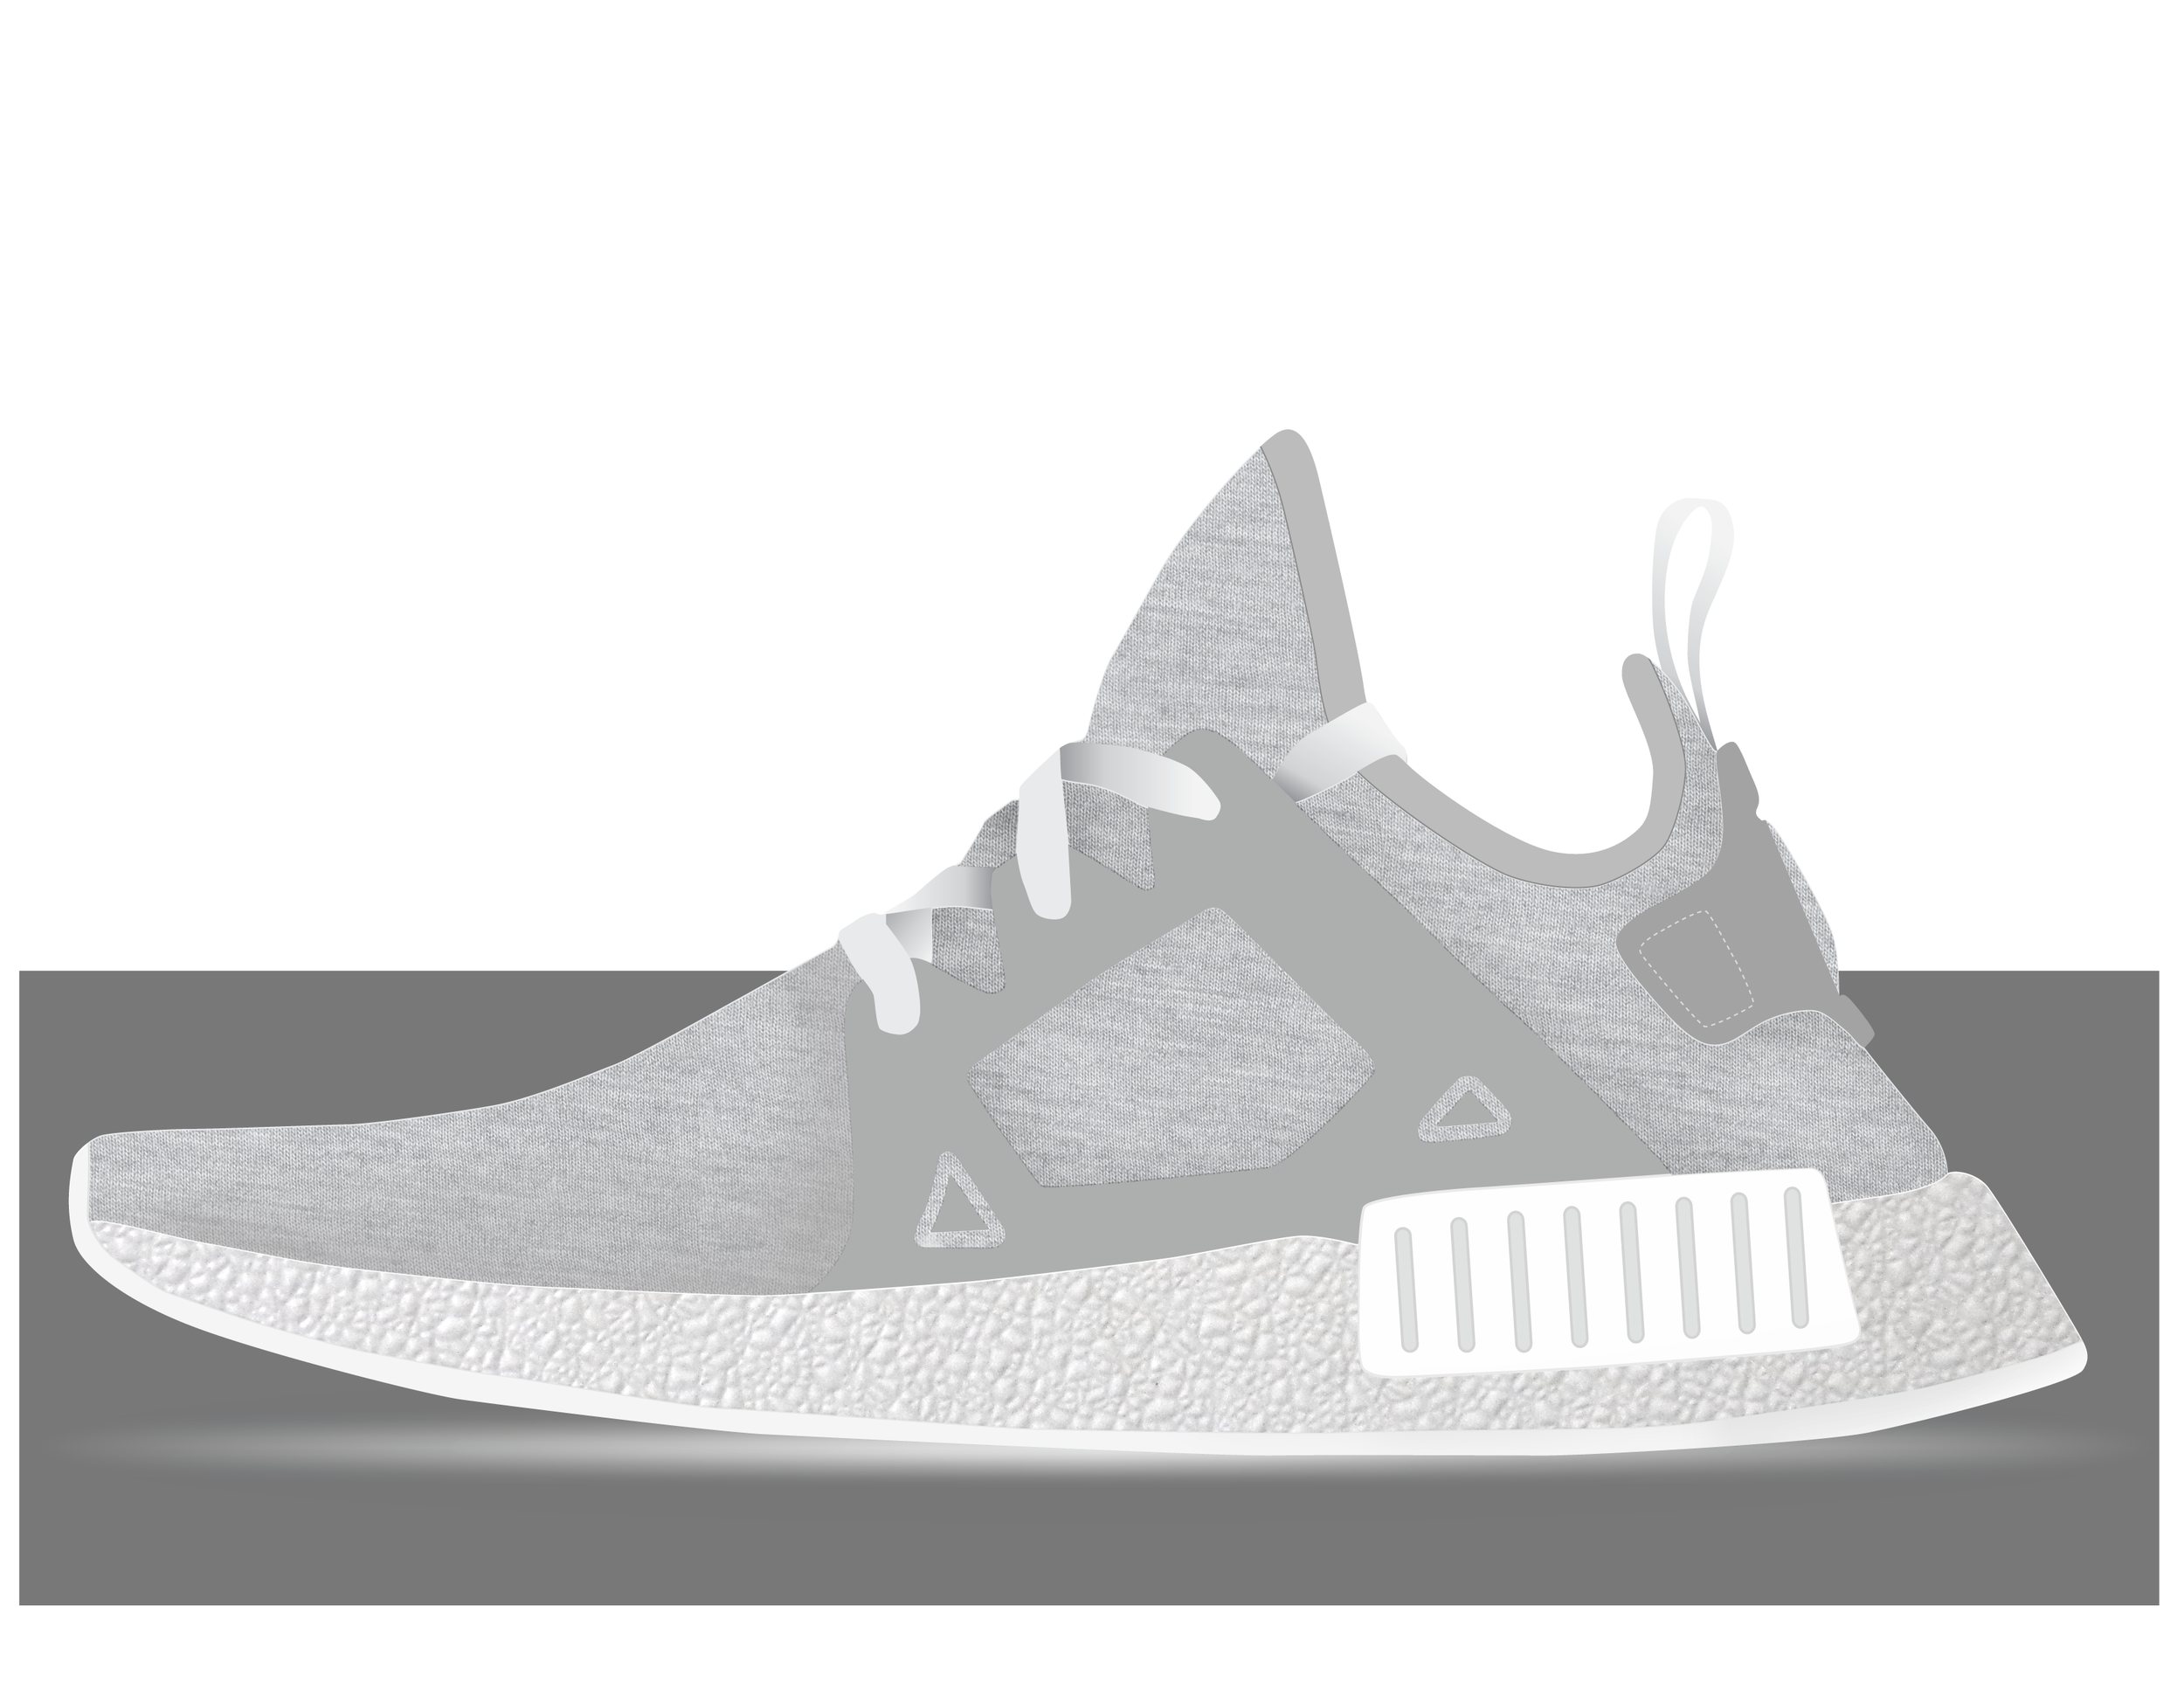 AdidasNMD_XR1 Illustration.png